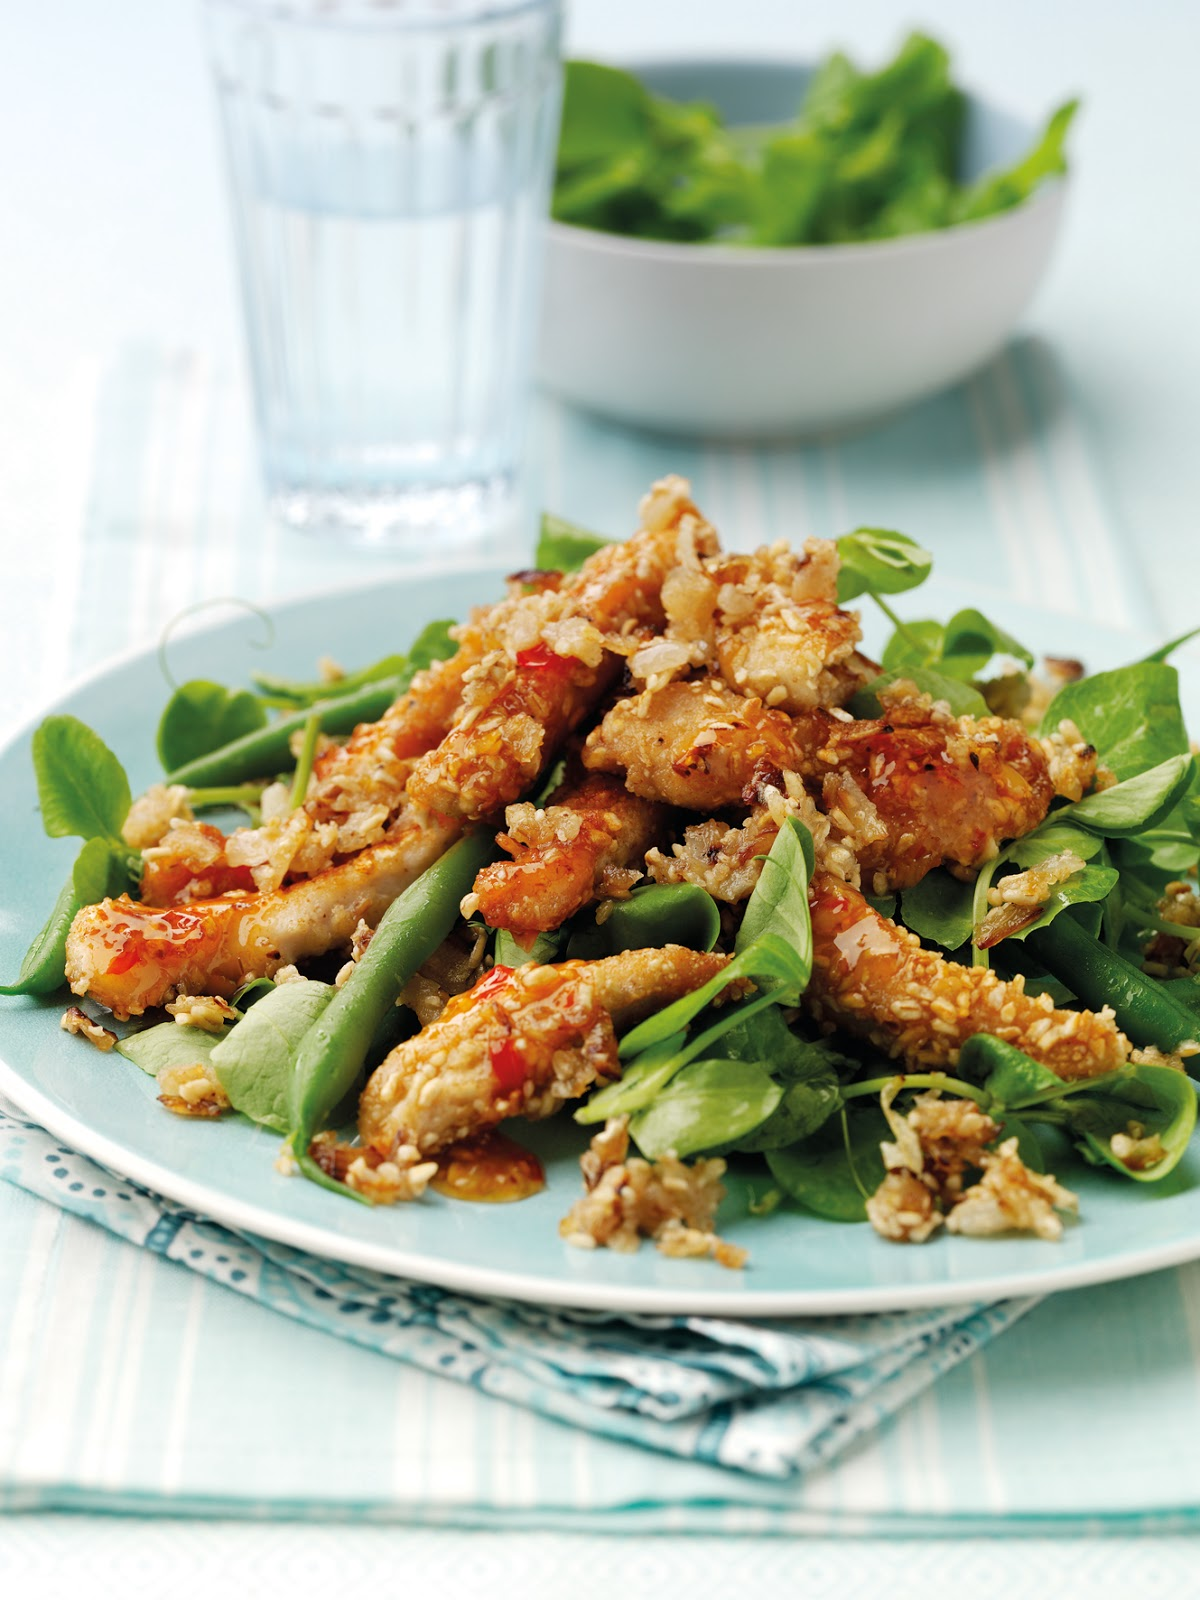 How To Make Warm Sweet Chilli Chicken Salad with Onion Oatmeal